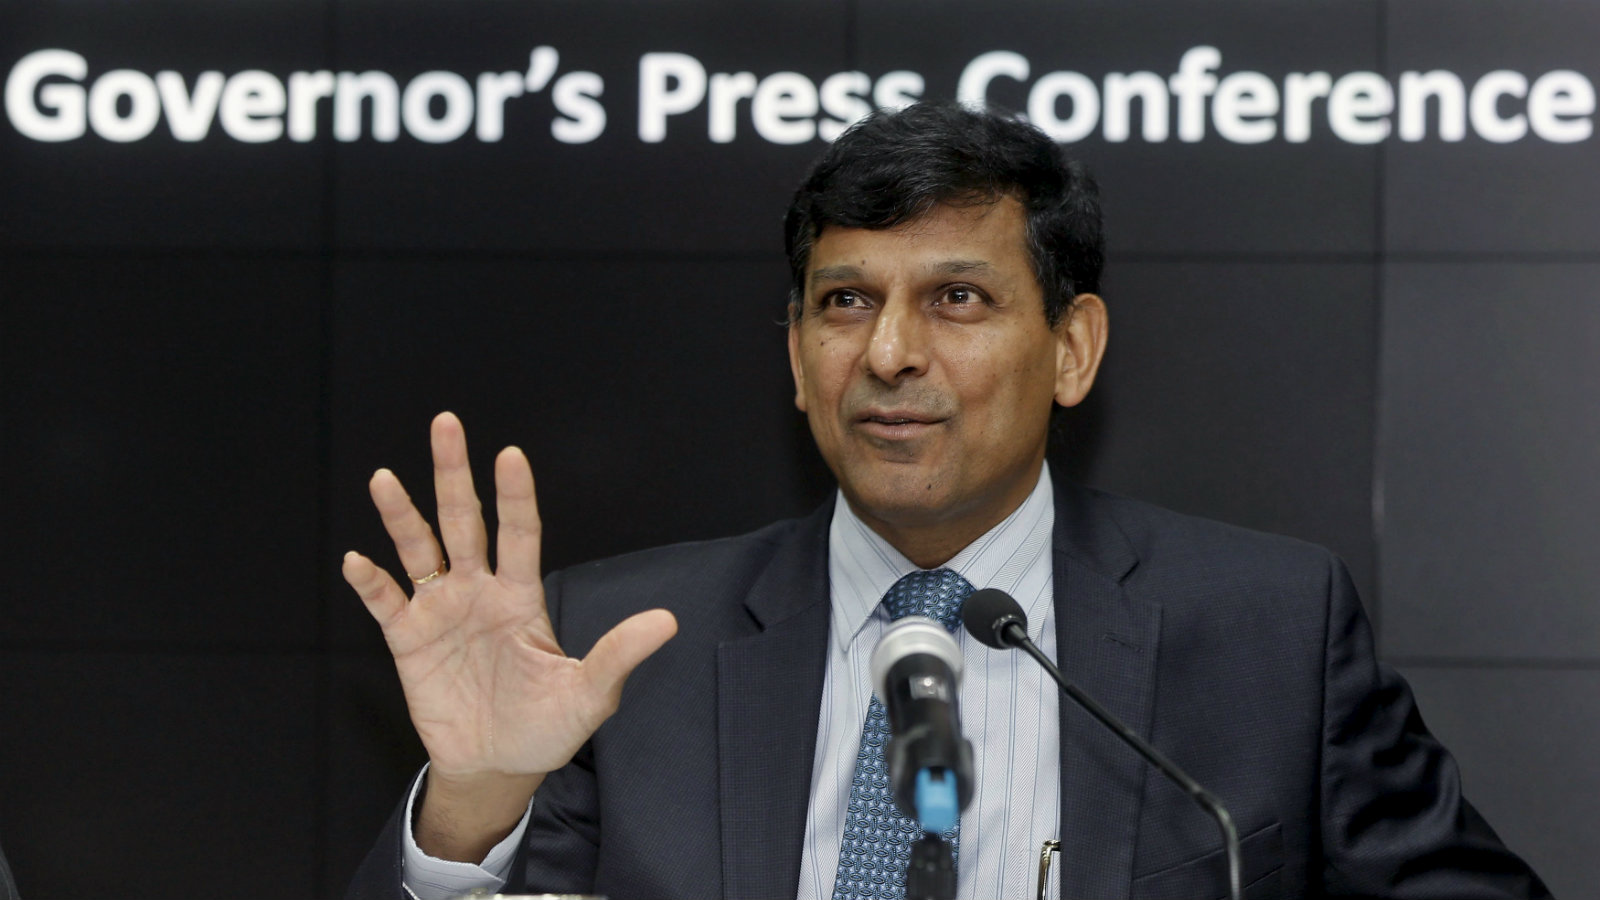 Reserve Bank of India (RBI) Governor Raghuram Rajan speaks during a news conference in Mumbai, India, December 1, 2015.